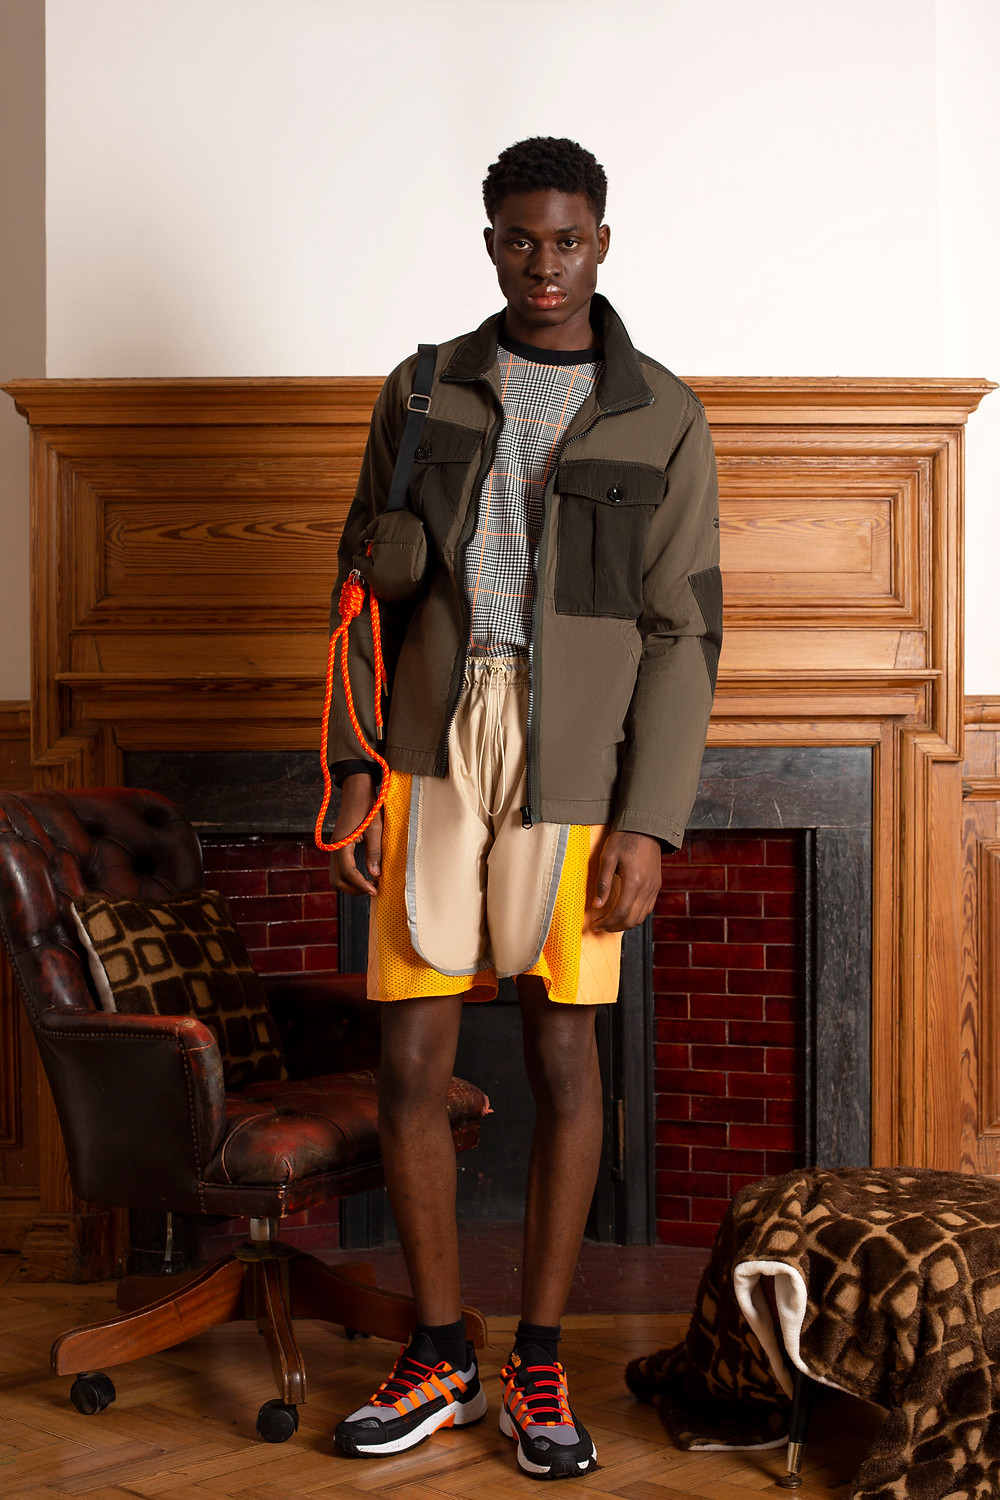 Jacket: G-Star Jumper: Puma Shorts: Madison McLoughlin Shoes: The North Face Socks: Stylists own Bag: Pull and bear